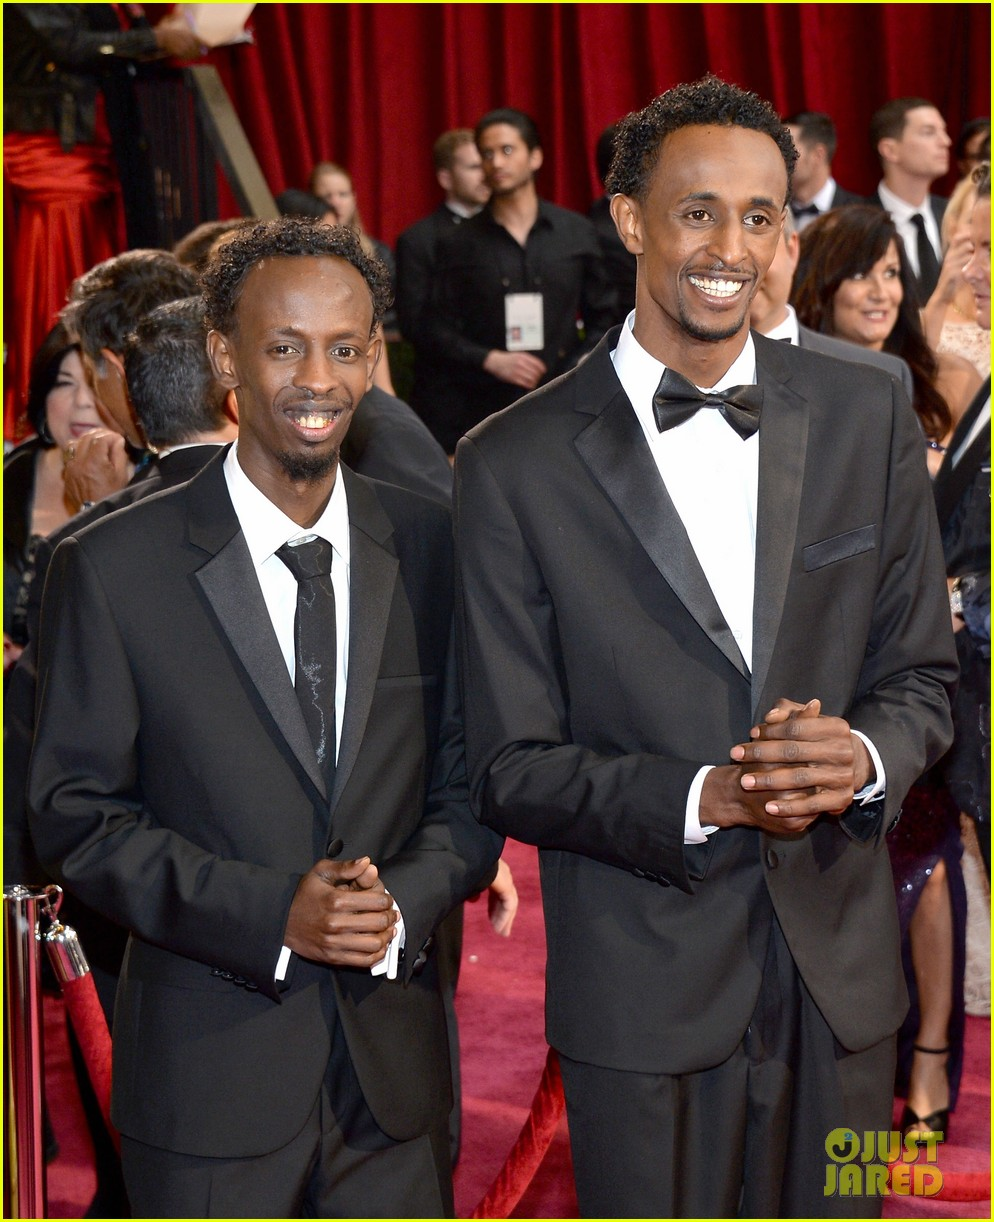 barkhad abdi is the captain now at oscars 2014 red carpet 01